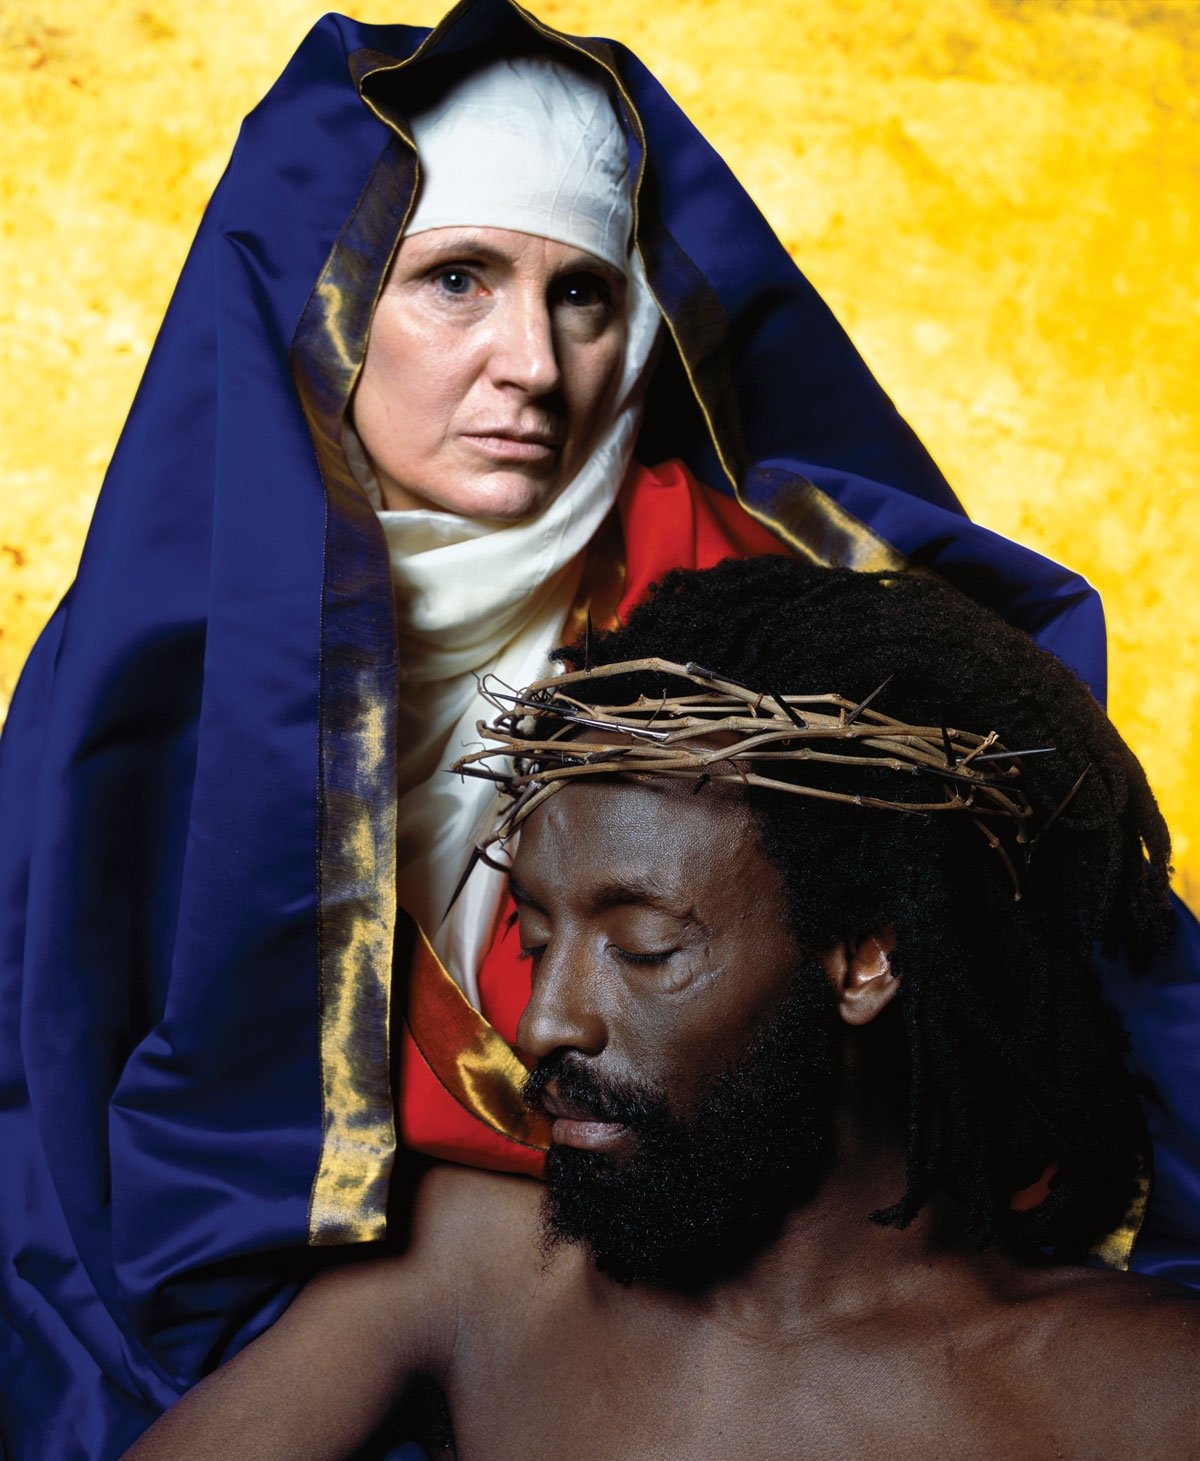 The Other Christ, Andres Serrano, Photography